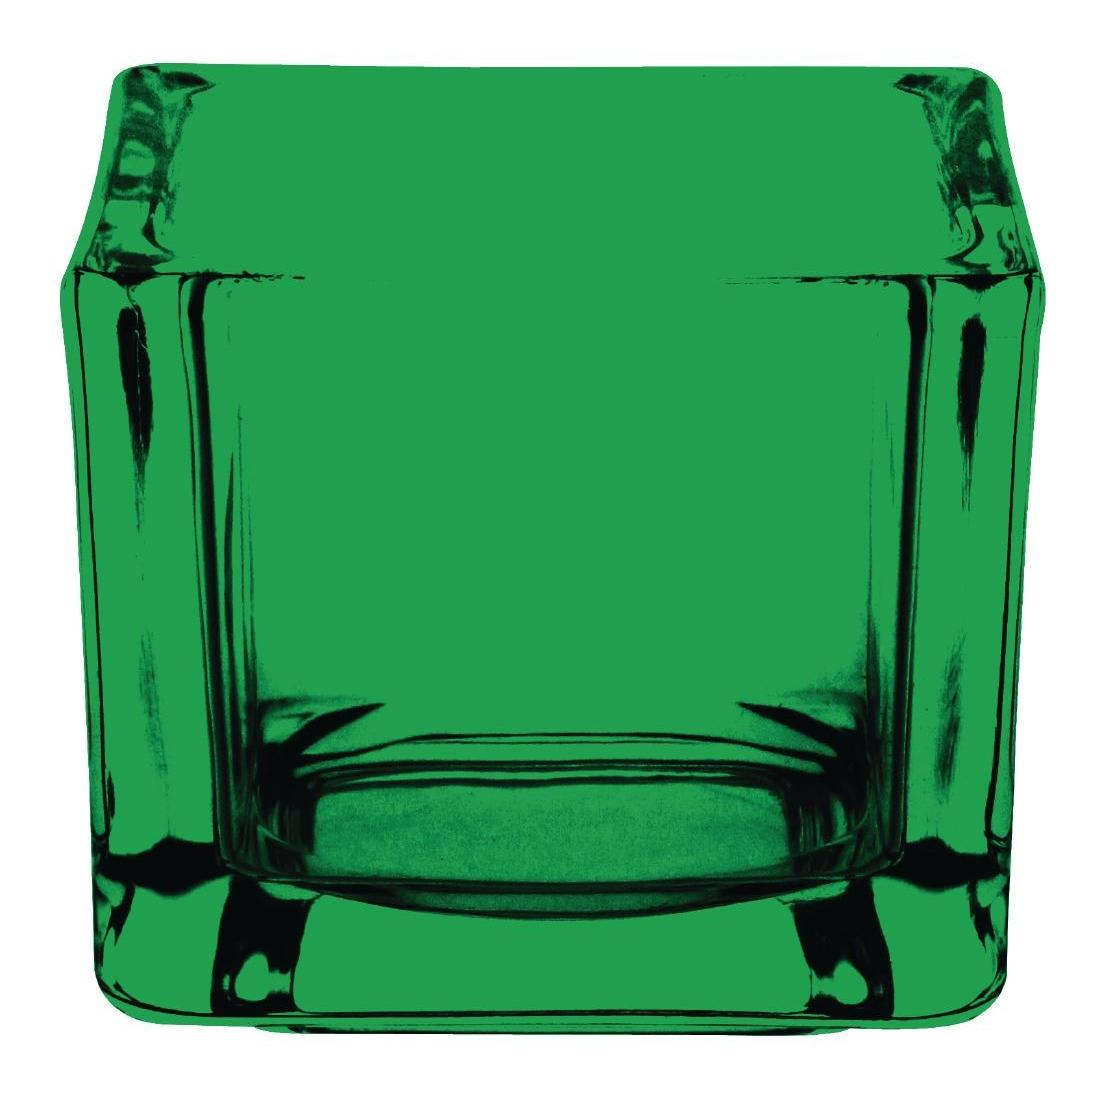 GM225 - Olympia Glass Tealight Holder Square Green - Case 6 - GM225